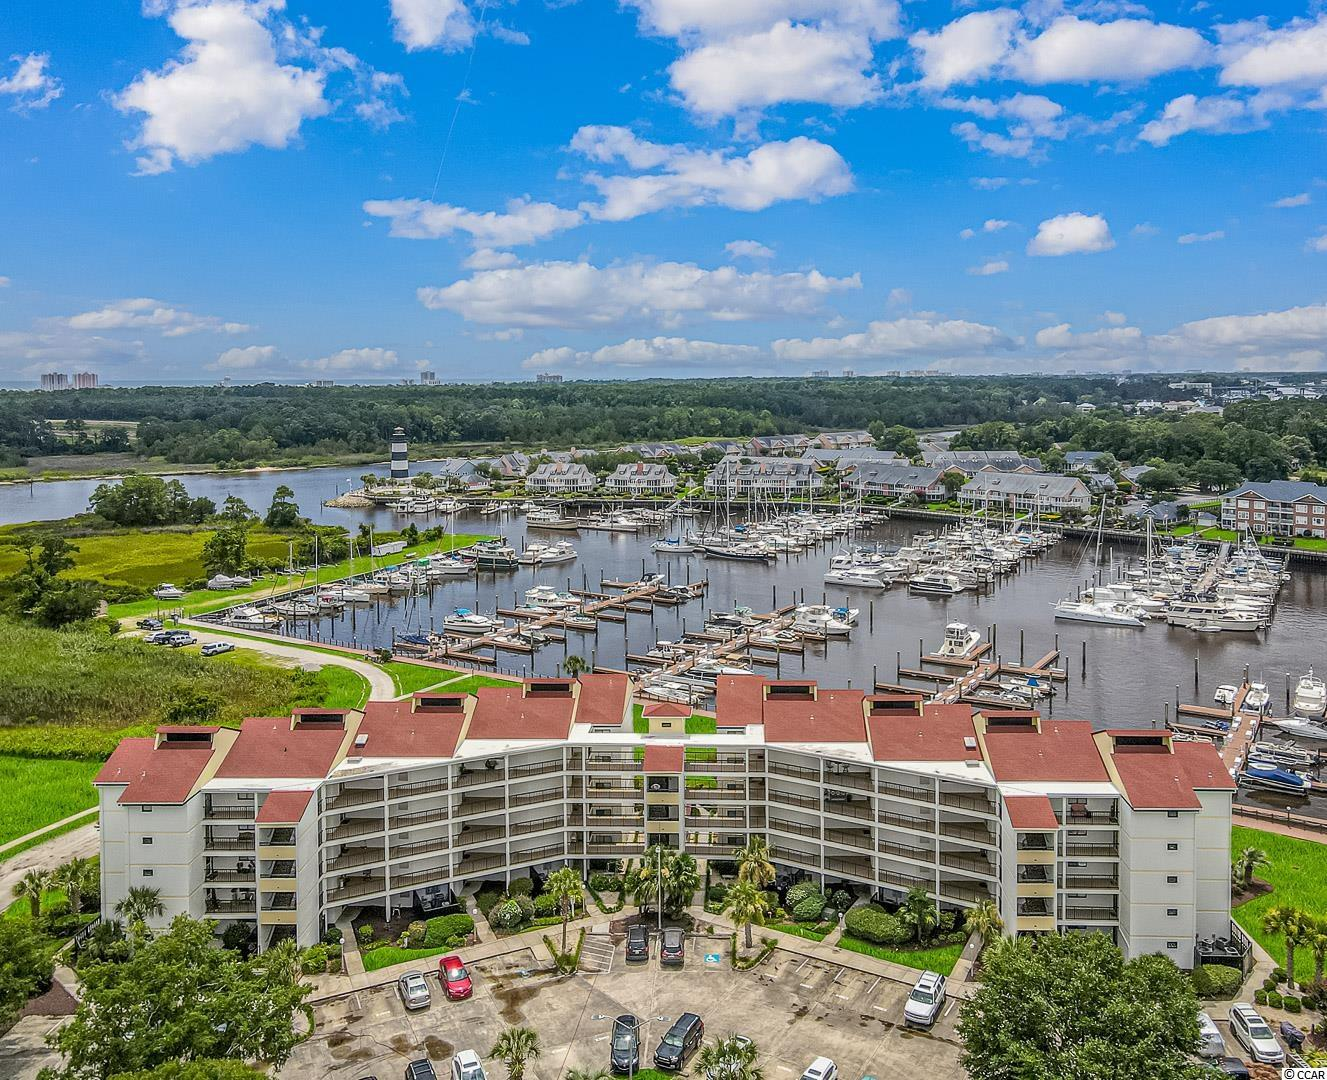 If you're looking for an immaculate condo overlooking the Intracoastal Waterway, you've found it. This condo has been renovated and is in pristine move in ready condition. The property features an open concept, upgraded flooring, updated appliances, and more. All bedrooms are spacious and the view from the living room and balconies are unbeatable. To top it off, the unit comes with a 42 foot boat slip!!! This one will be gone within hours, schedule a showing today!!